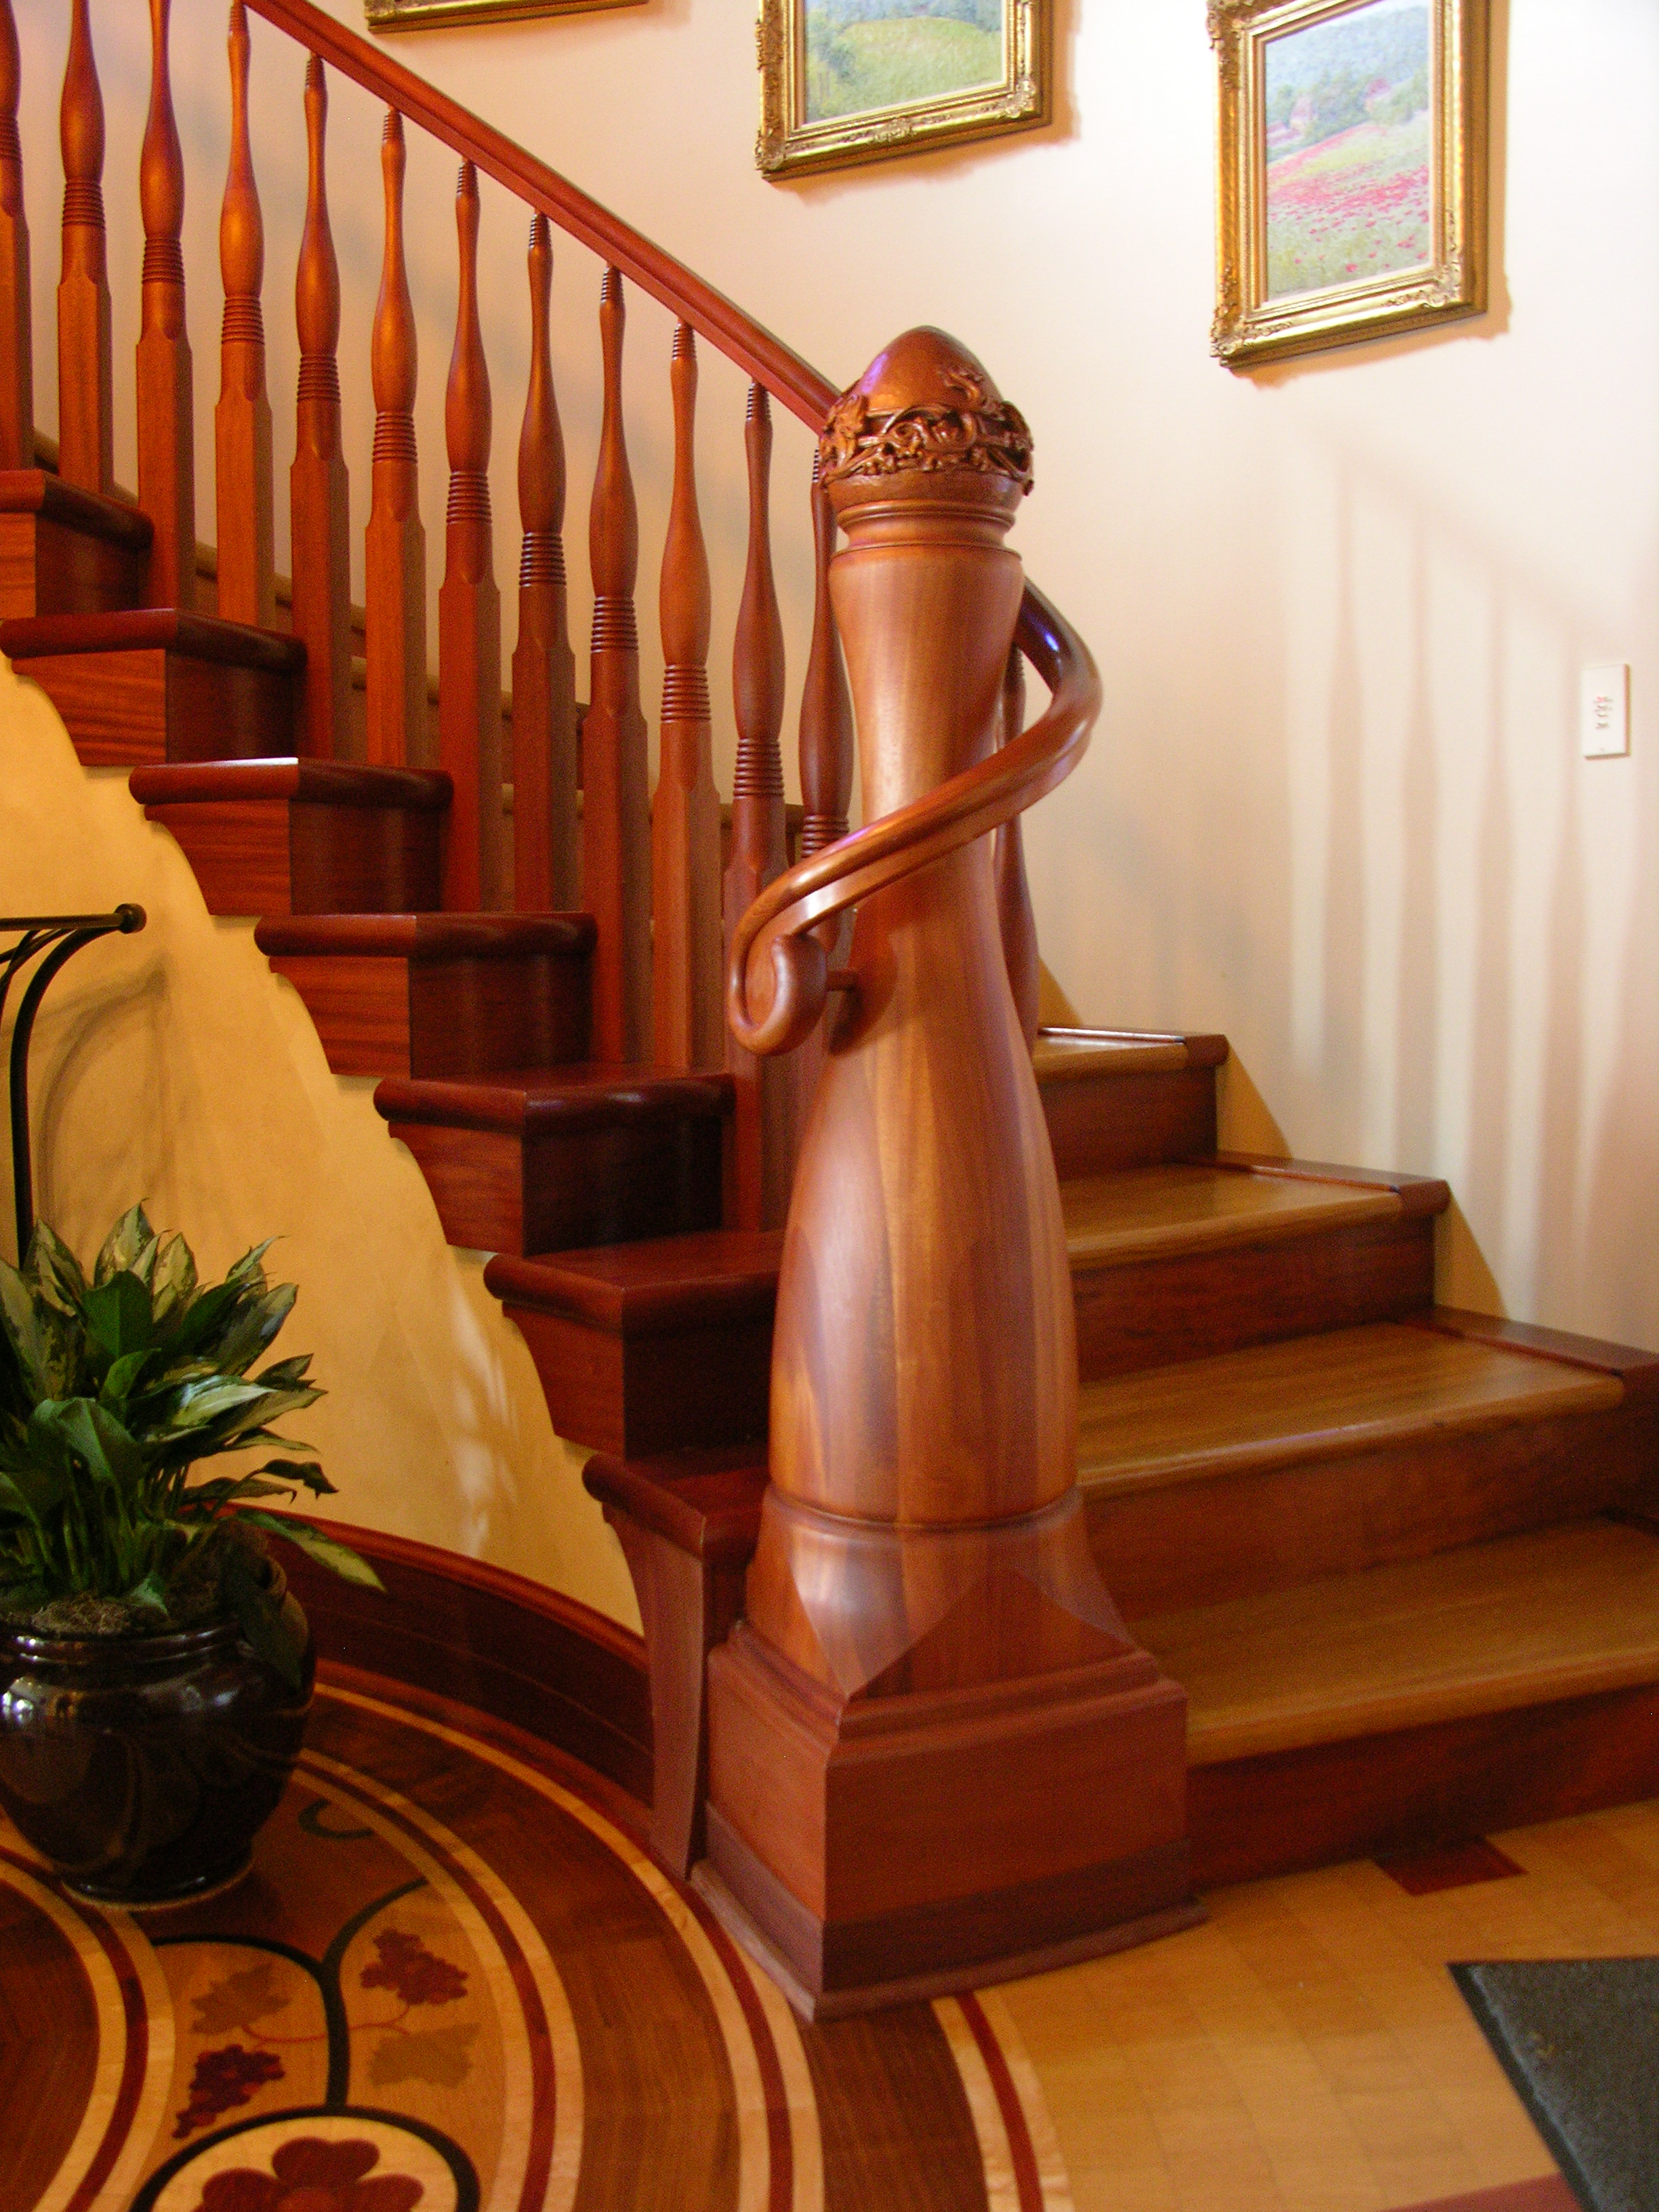 Mahogany newel post and rail by Master Woodworks // © master woodworks